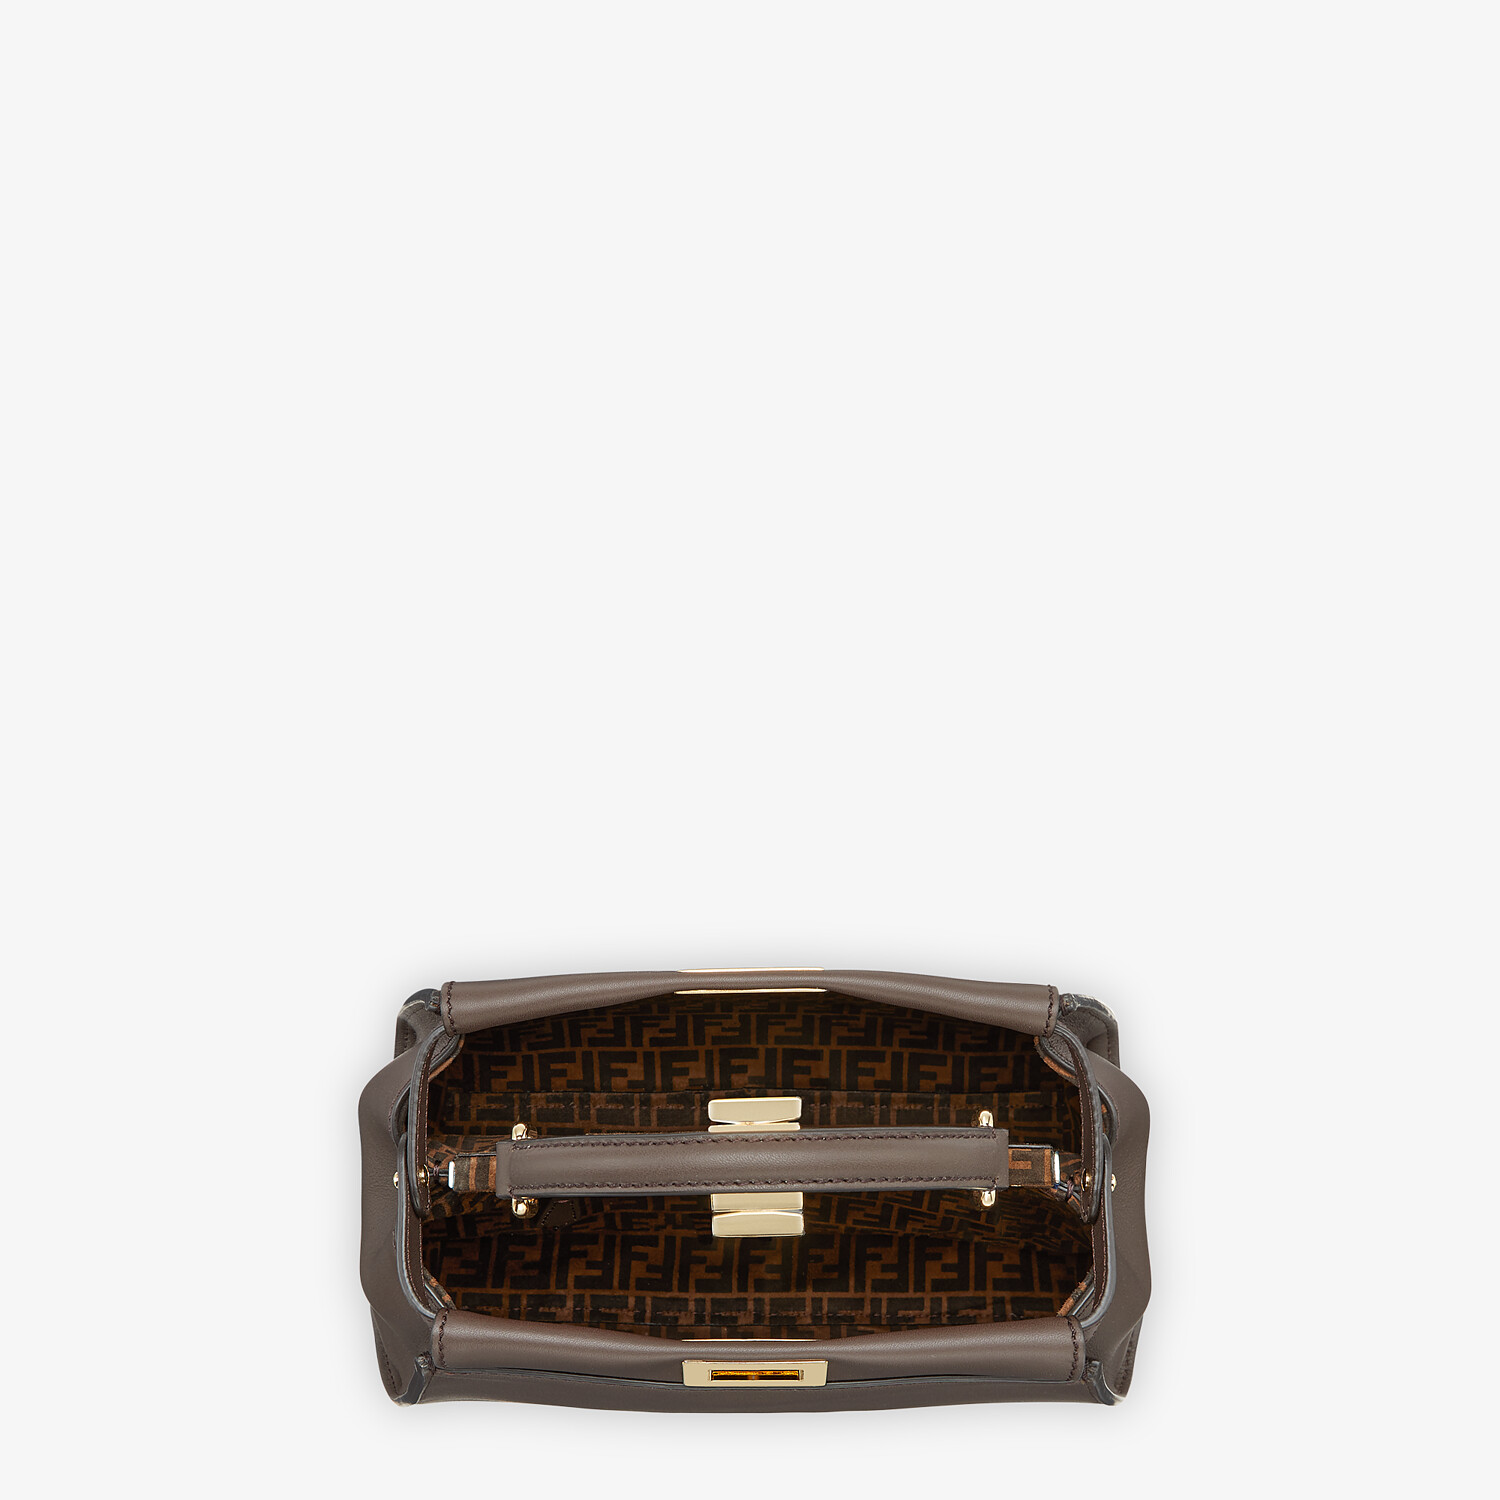 FENDI PEEKABOO ICONIC MINI -  Brown leather bag - view 4 detail